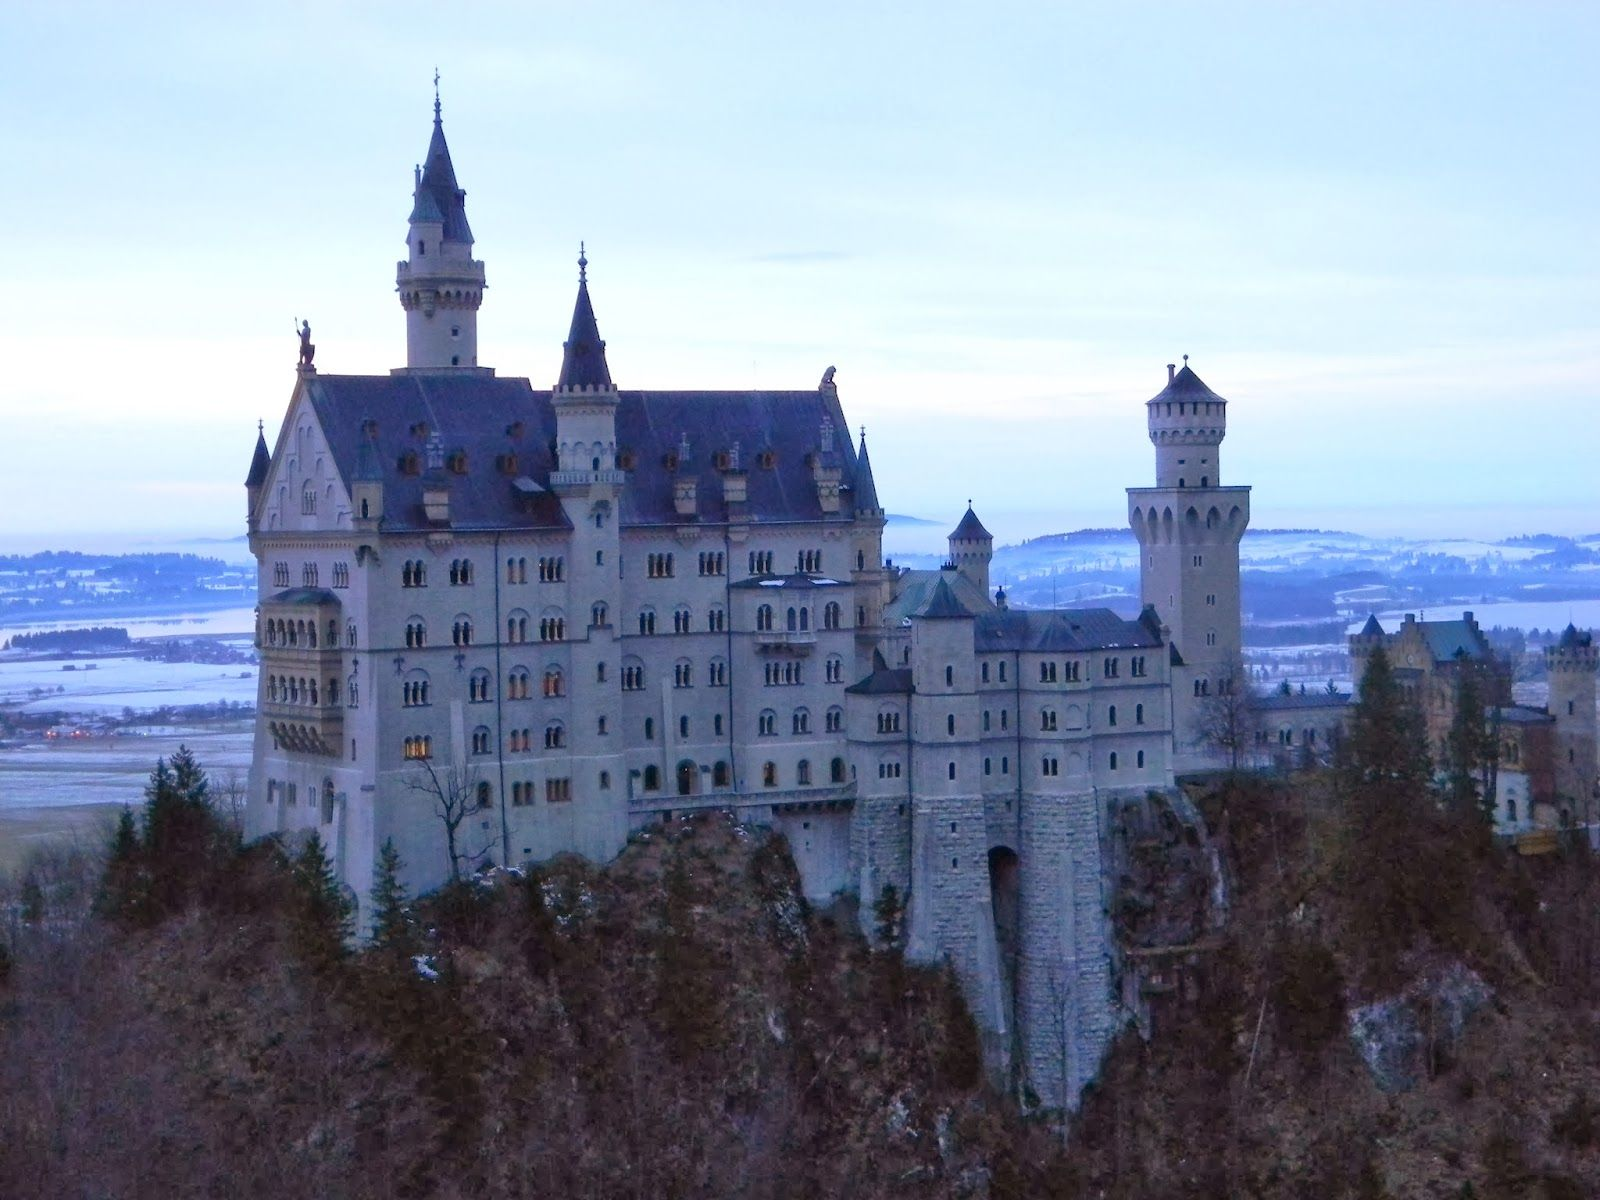 Neuschwanstein Castle Schwangau Germany Snow White S Castle Snow White Neuschwanstein Castle Castle Germany